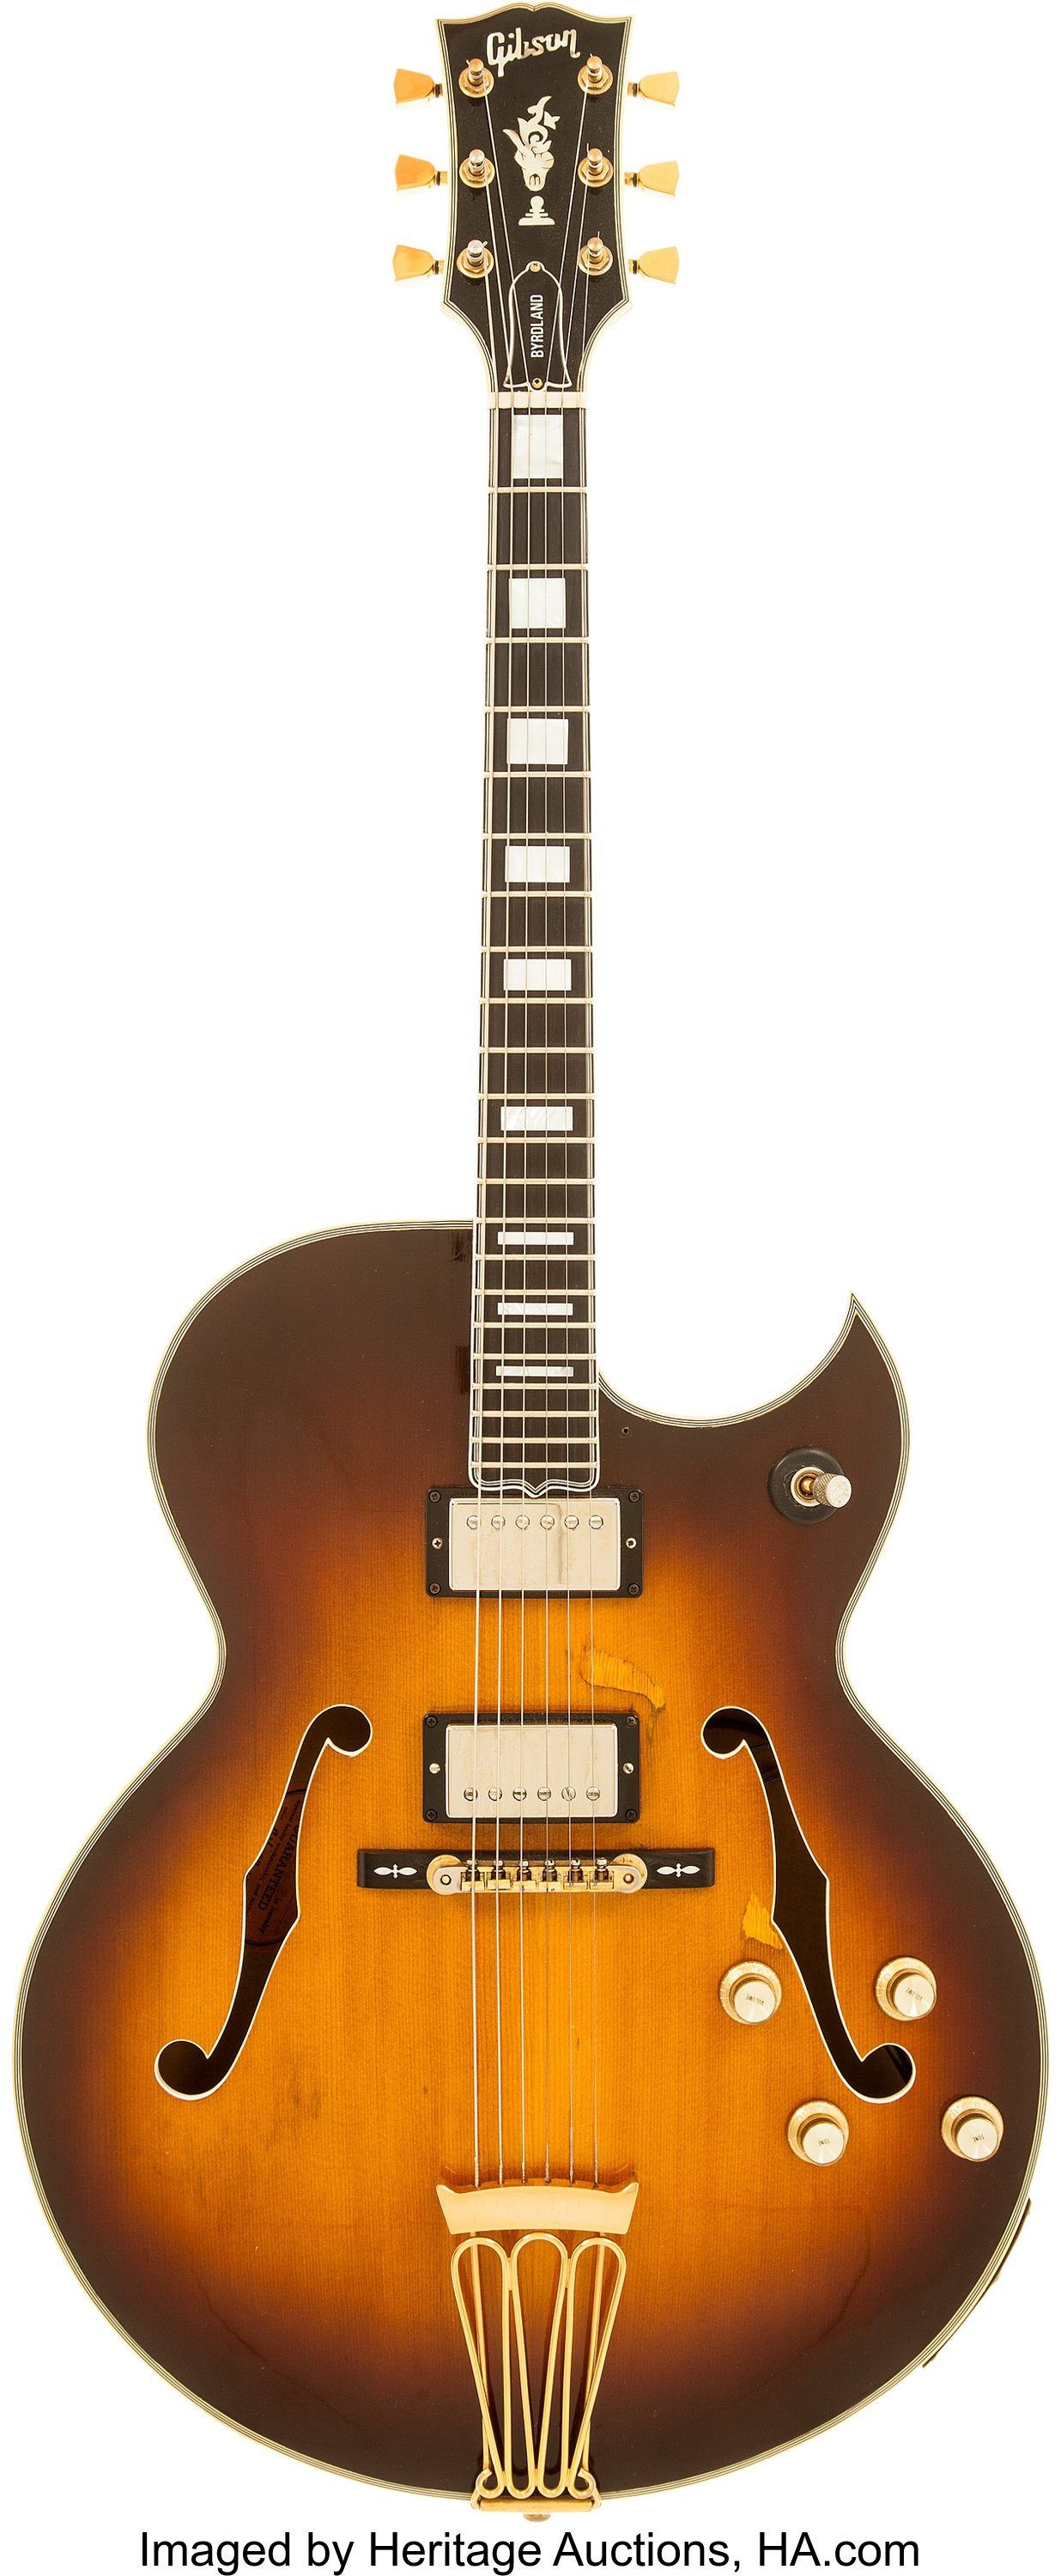 ted nugent 39 s 1968 gibson byrdland semi hollow body electric guitar lot 85043 heritage auctions. Black Bedroom Furniture Sets. Home Design Ideas